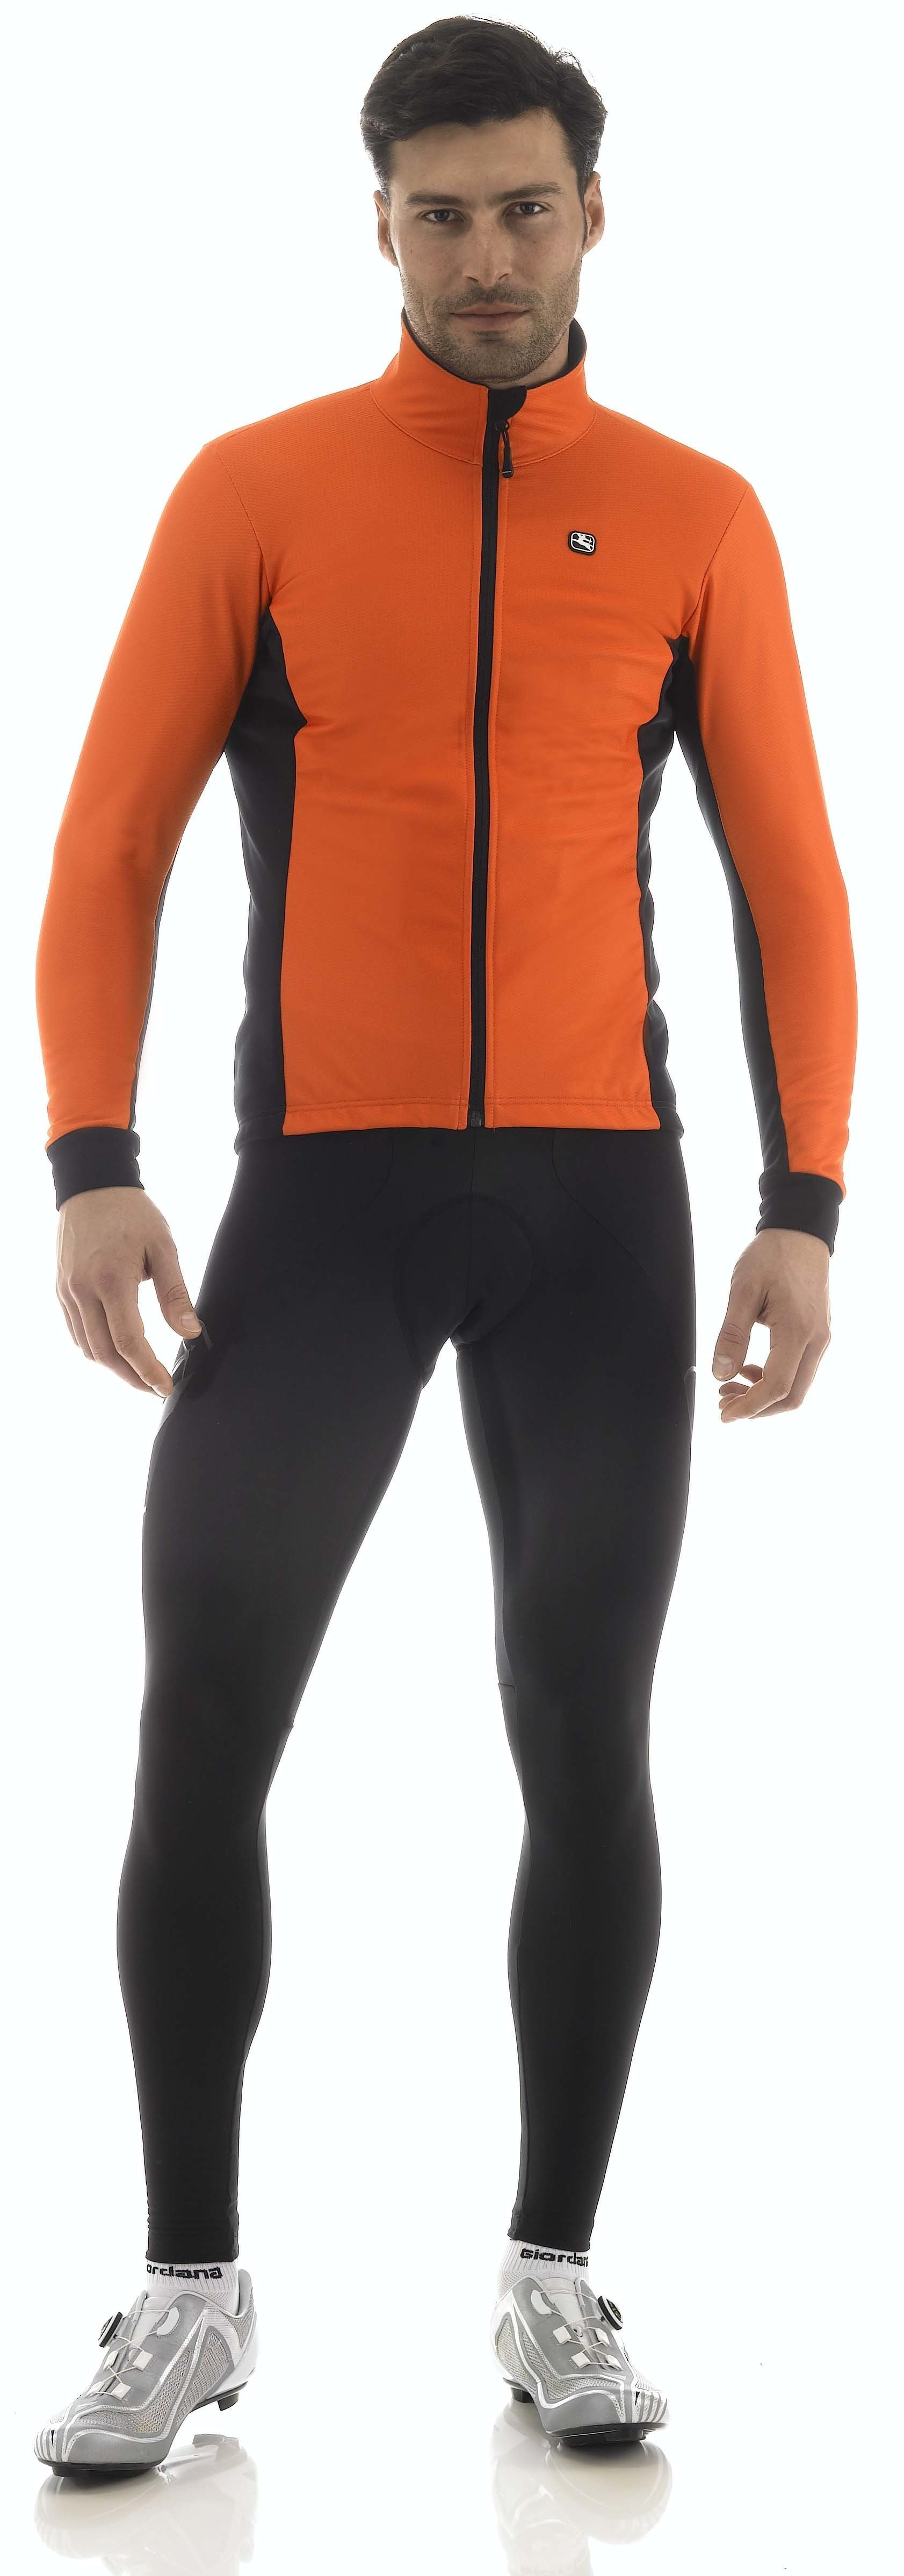 Giordana Vinter Jakke Fusion - Orange